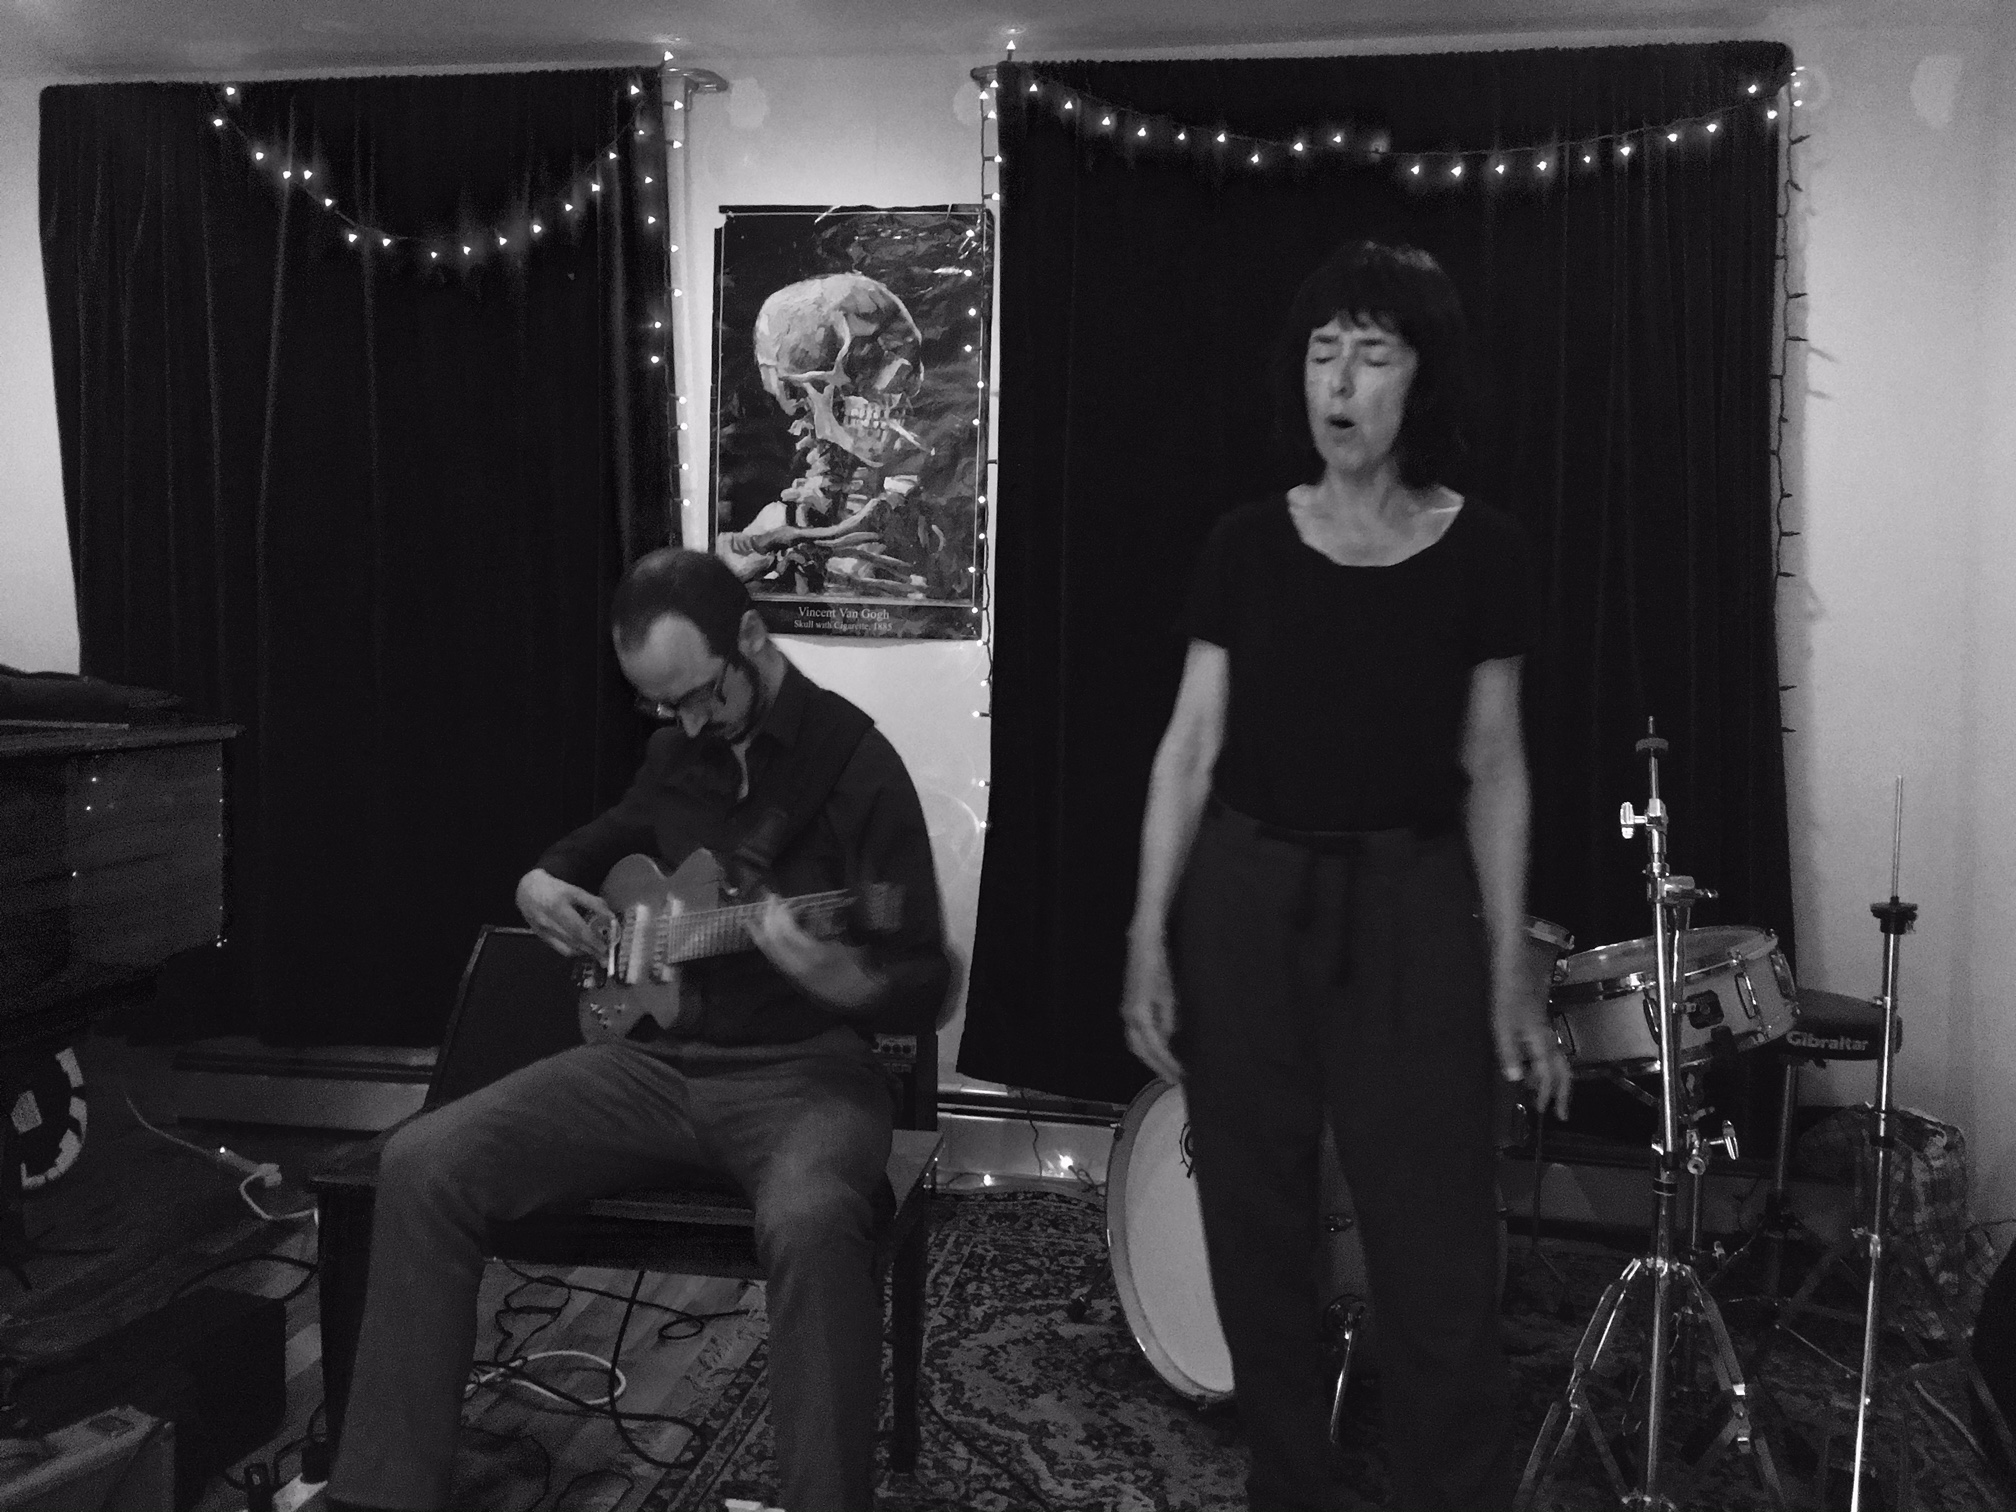 Review: Viv Corringham and Nicola Hein Live at Outskirts, May 6, 2018